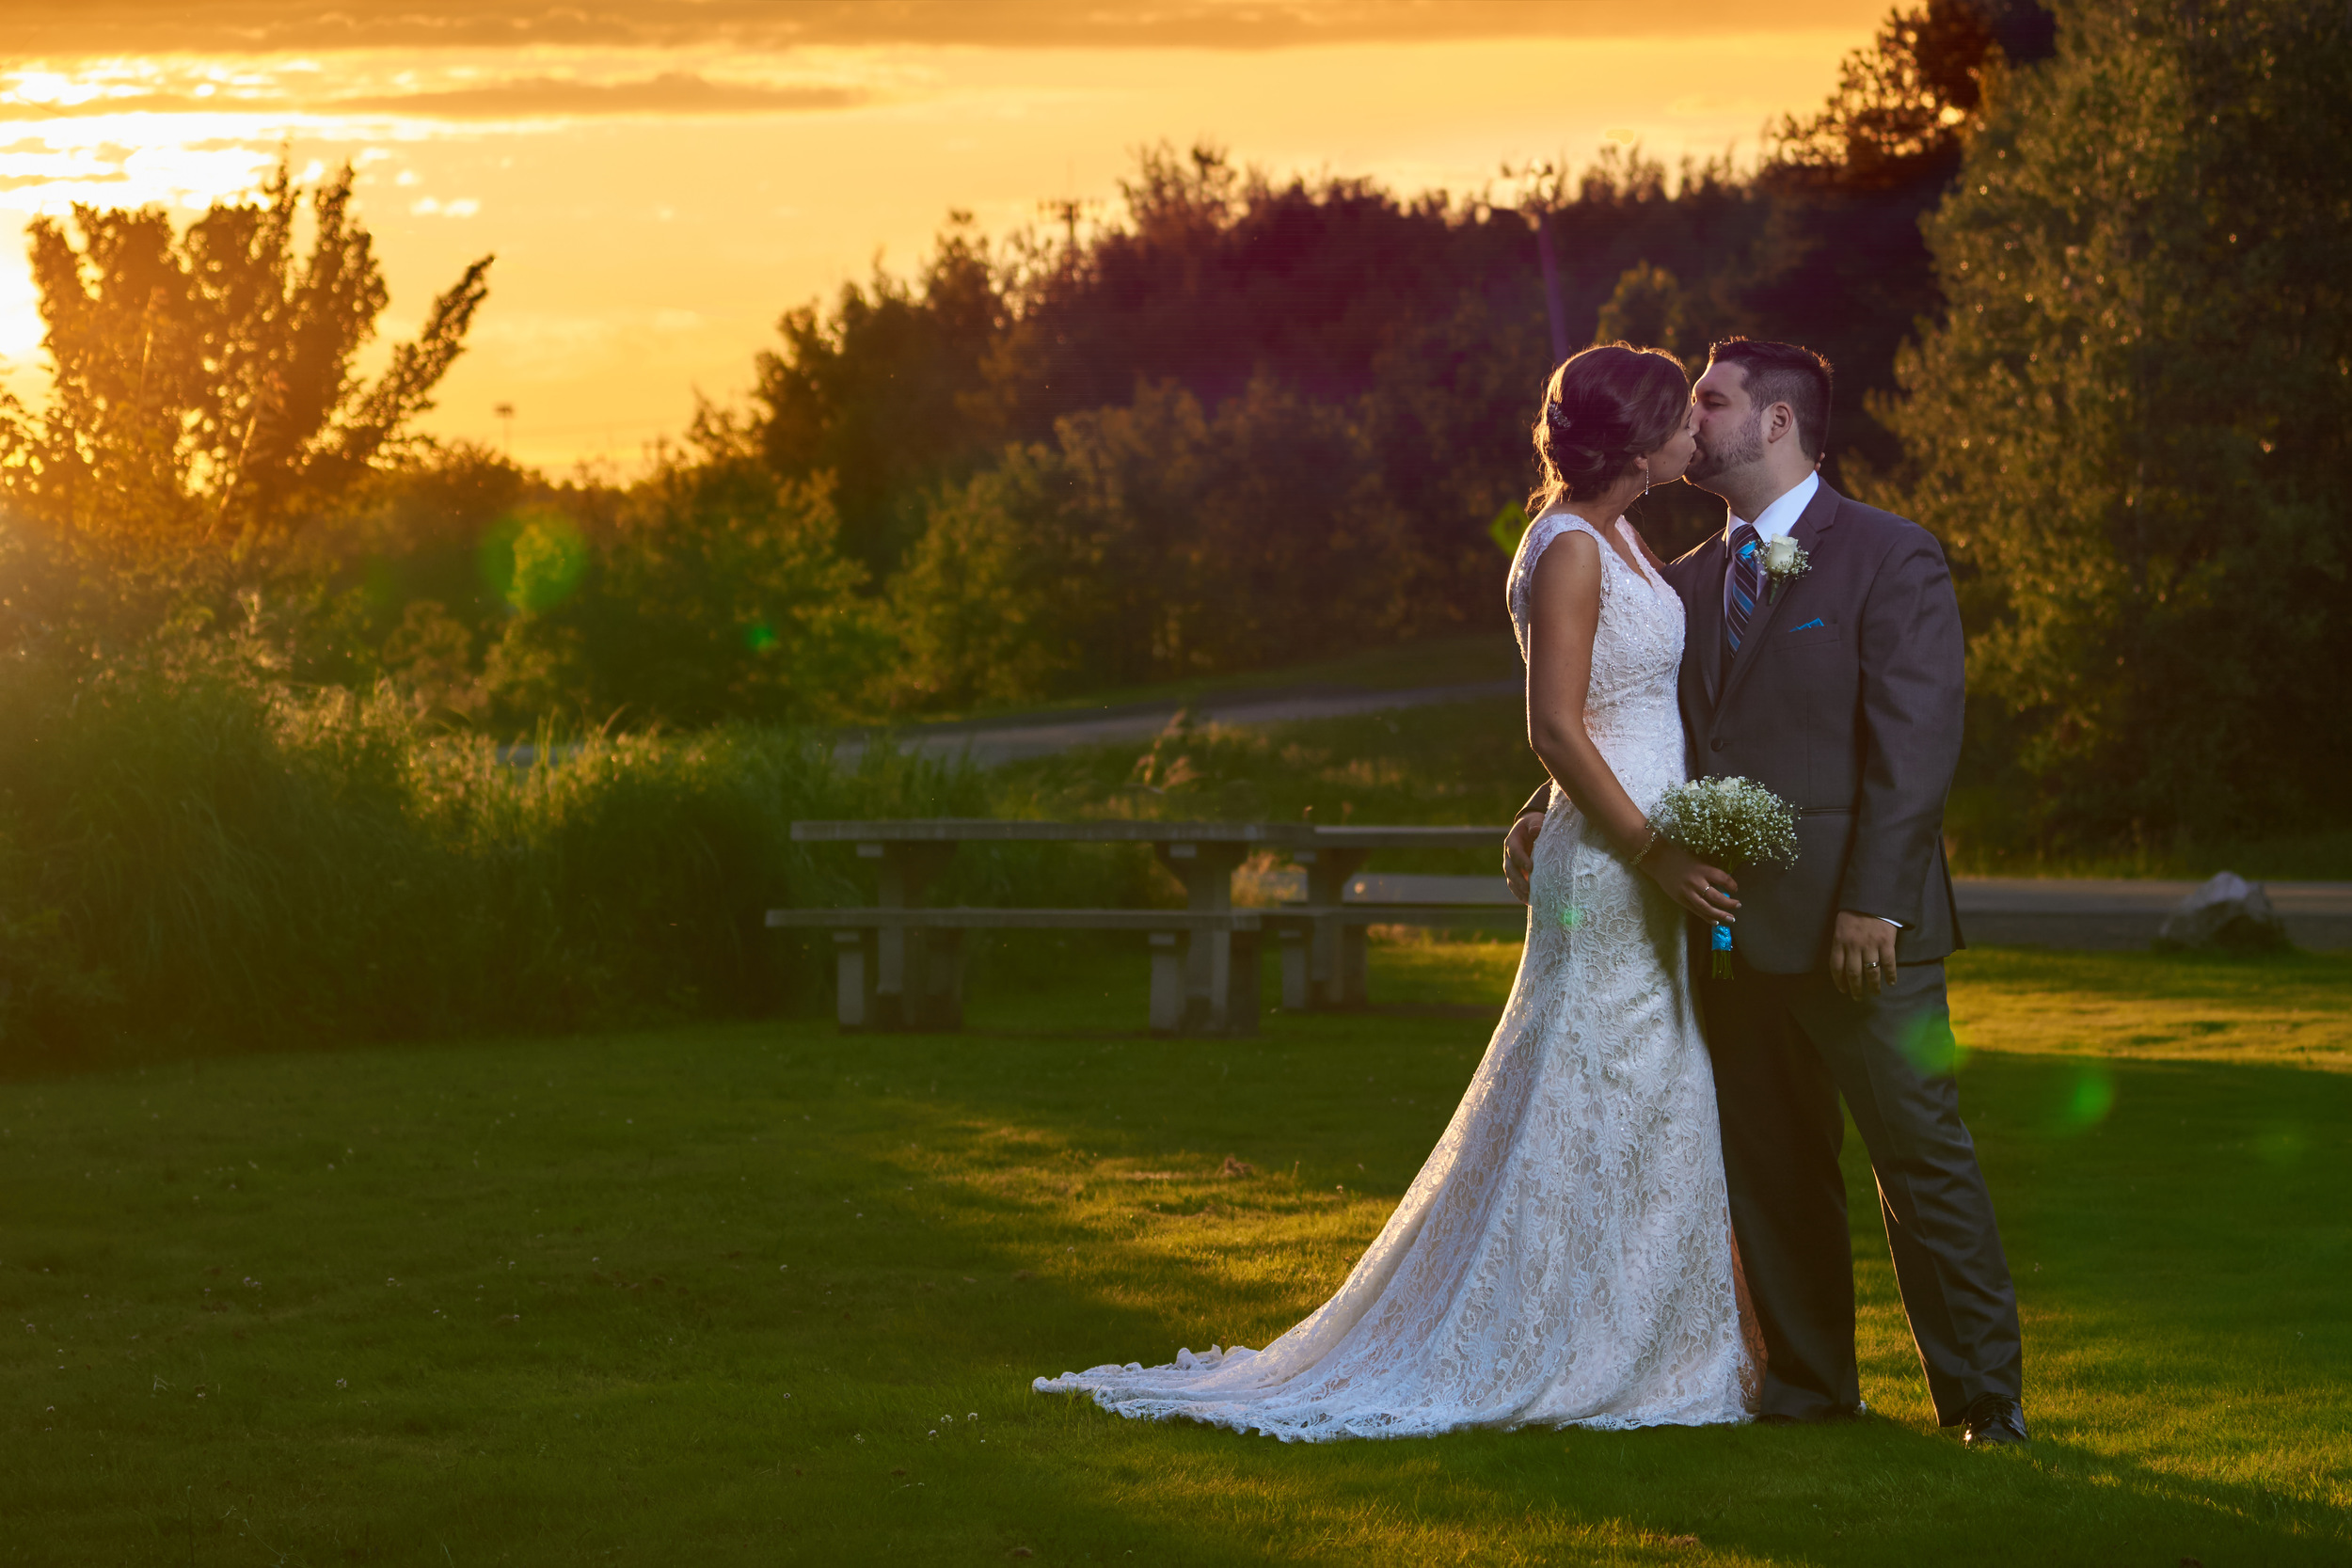 sunset bride and groom.jpg